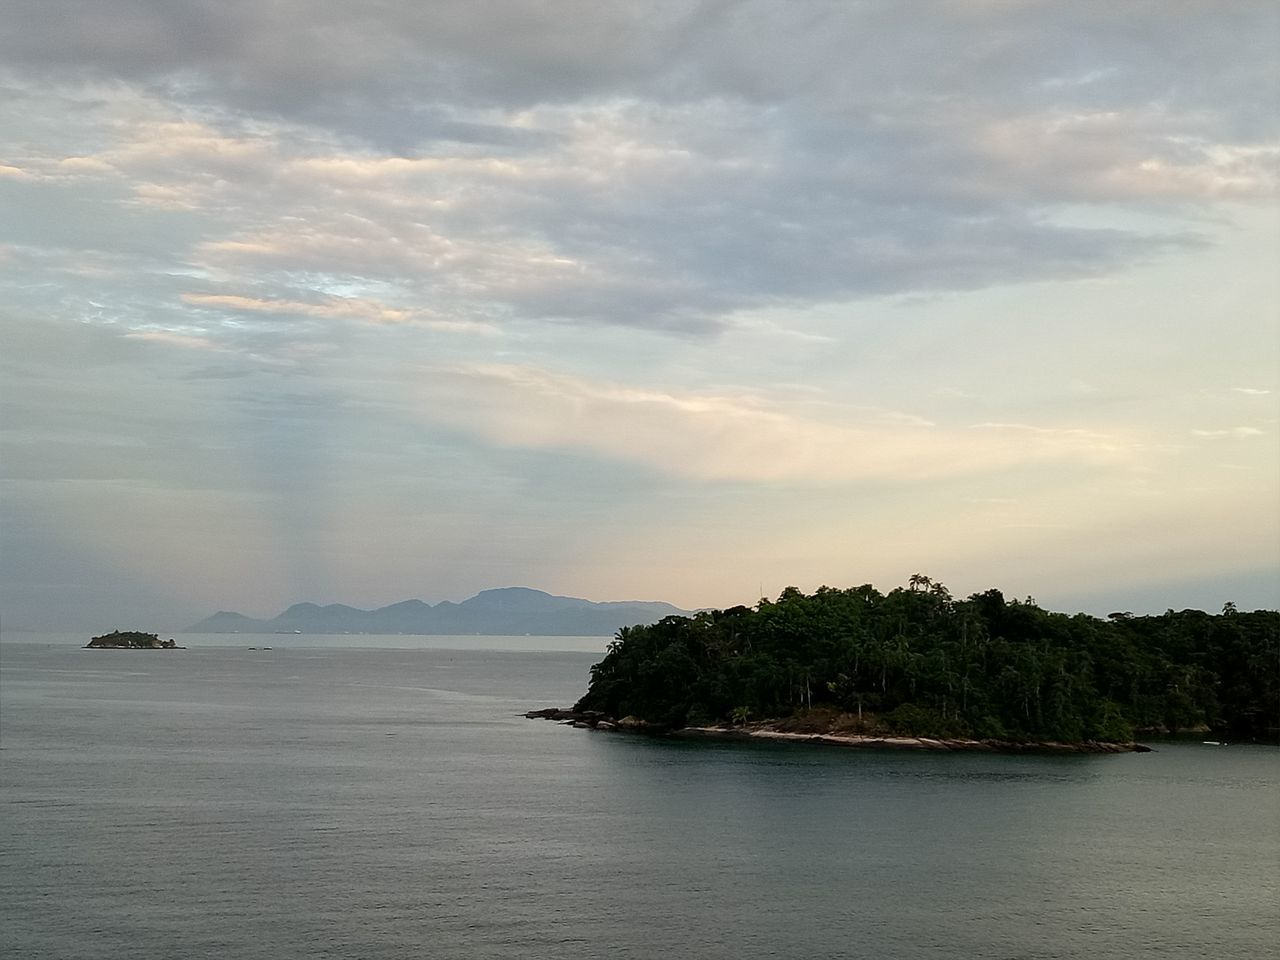 sky, scenics, sea, tranquility, nature, beauty in nature, tranquil scene, water, cloud - sky, no people, waterfront, outdoors, mountain, tree, day